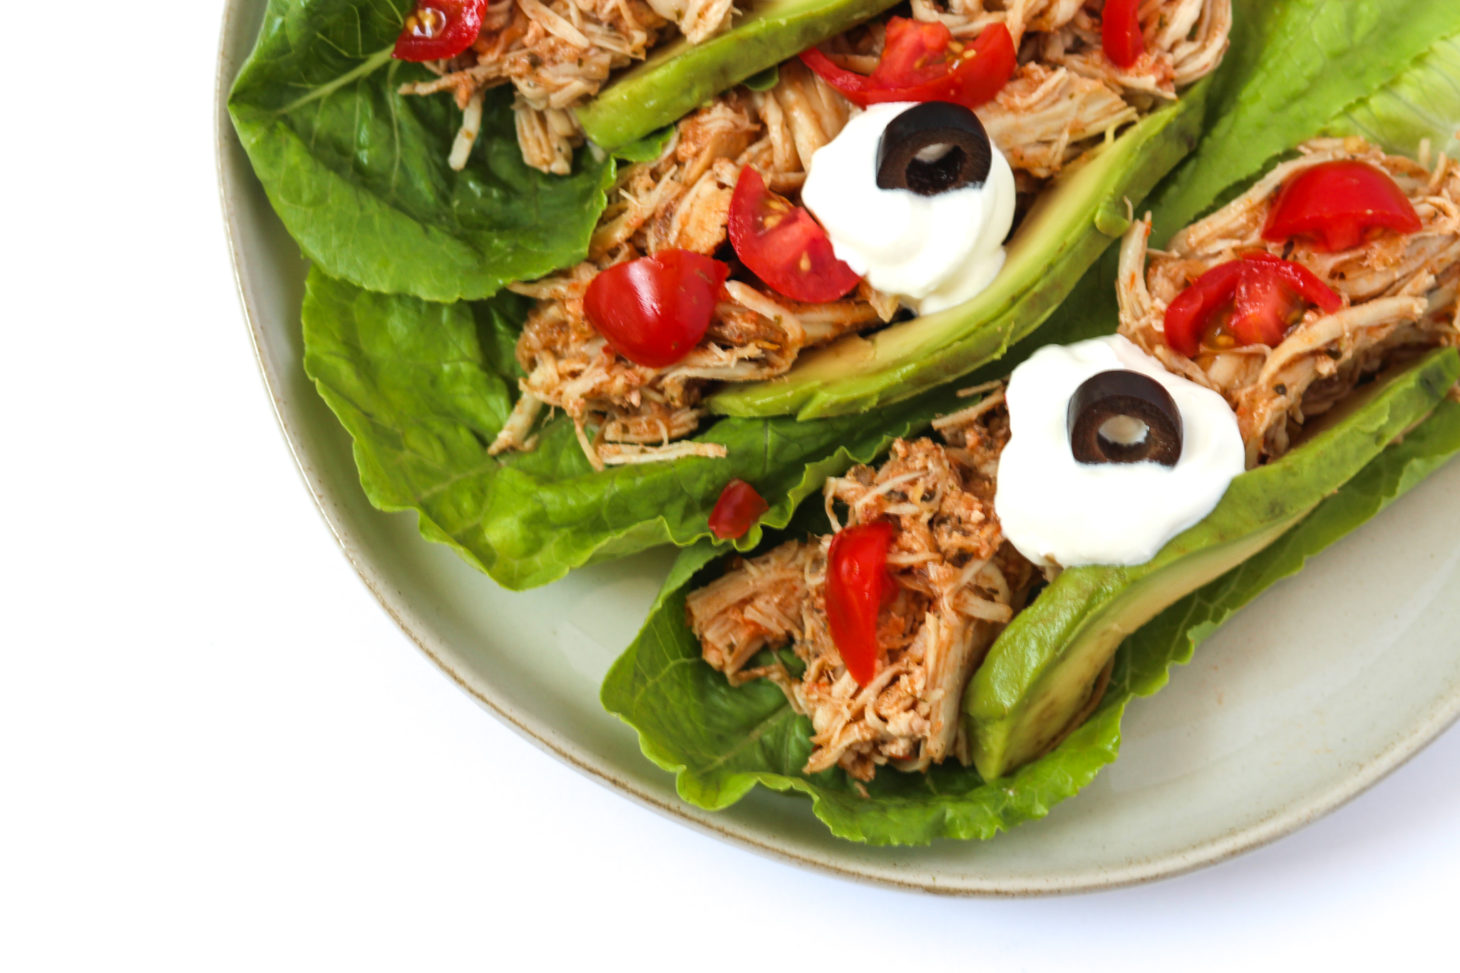 Shredded Chicken in romane lettuce topped with tomatoes, avocado, sour cream, black olives on a white plate